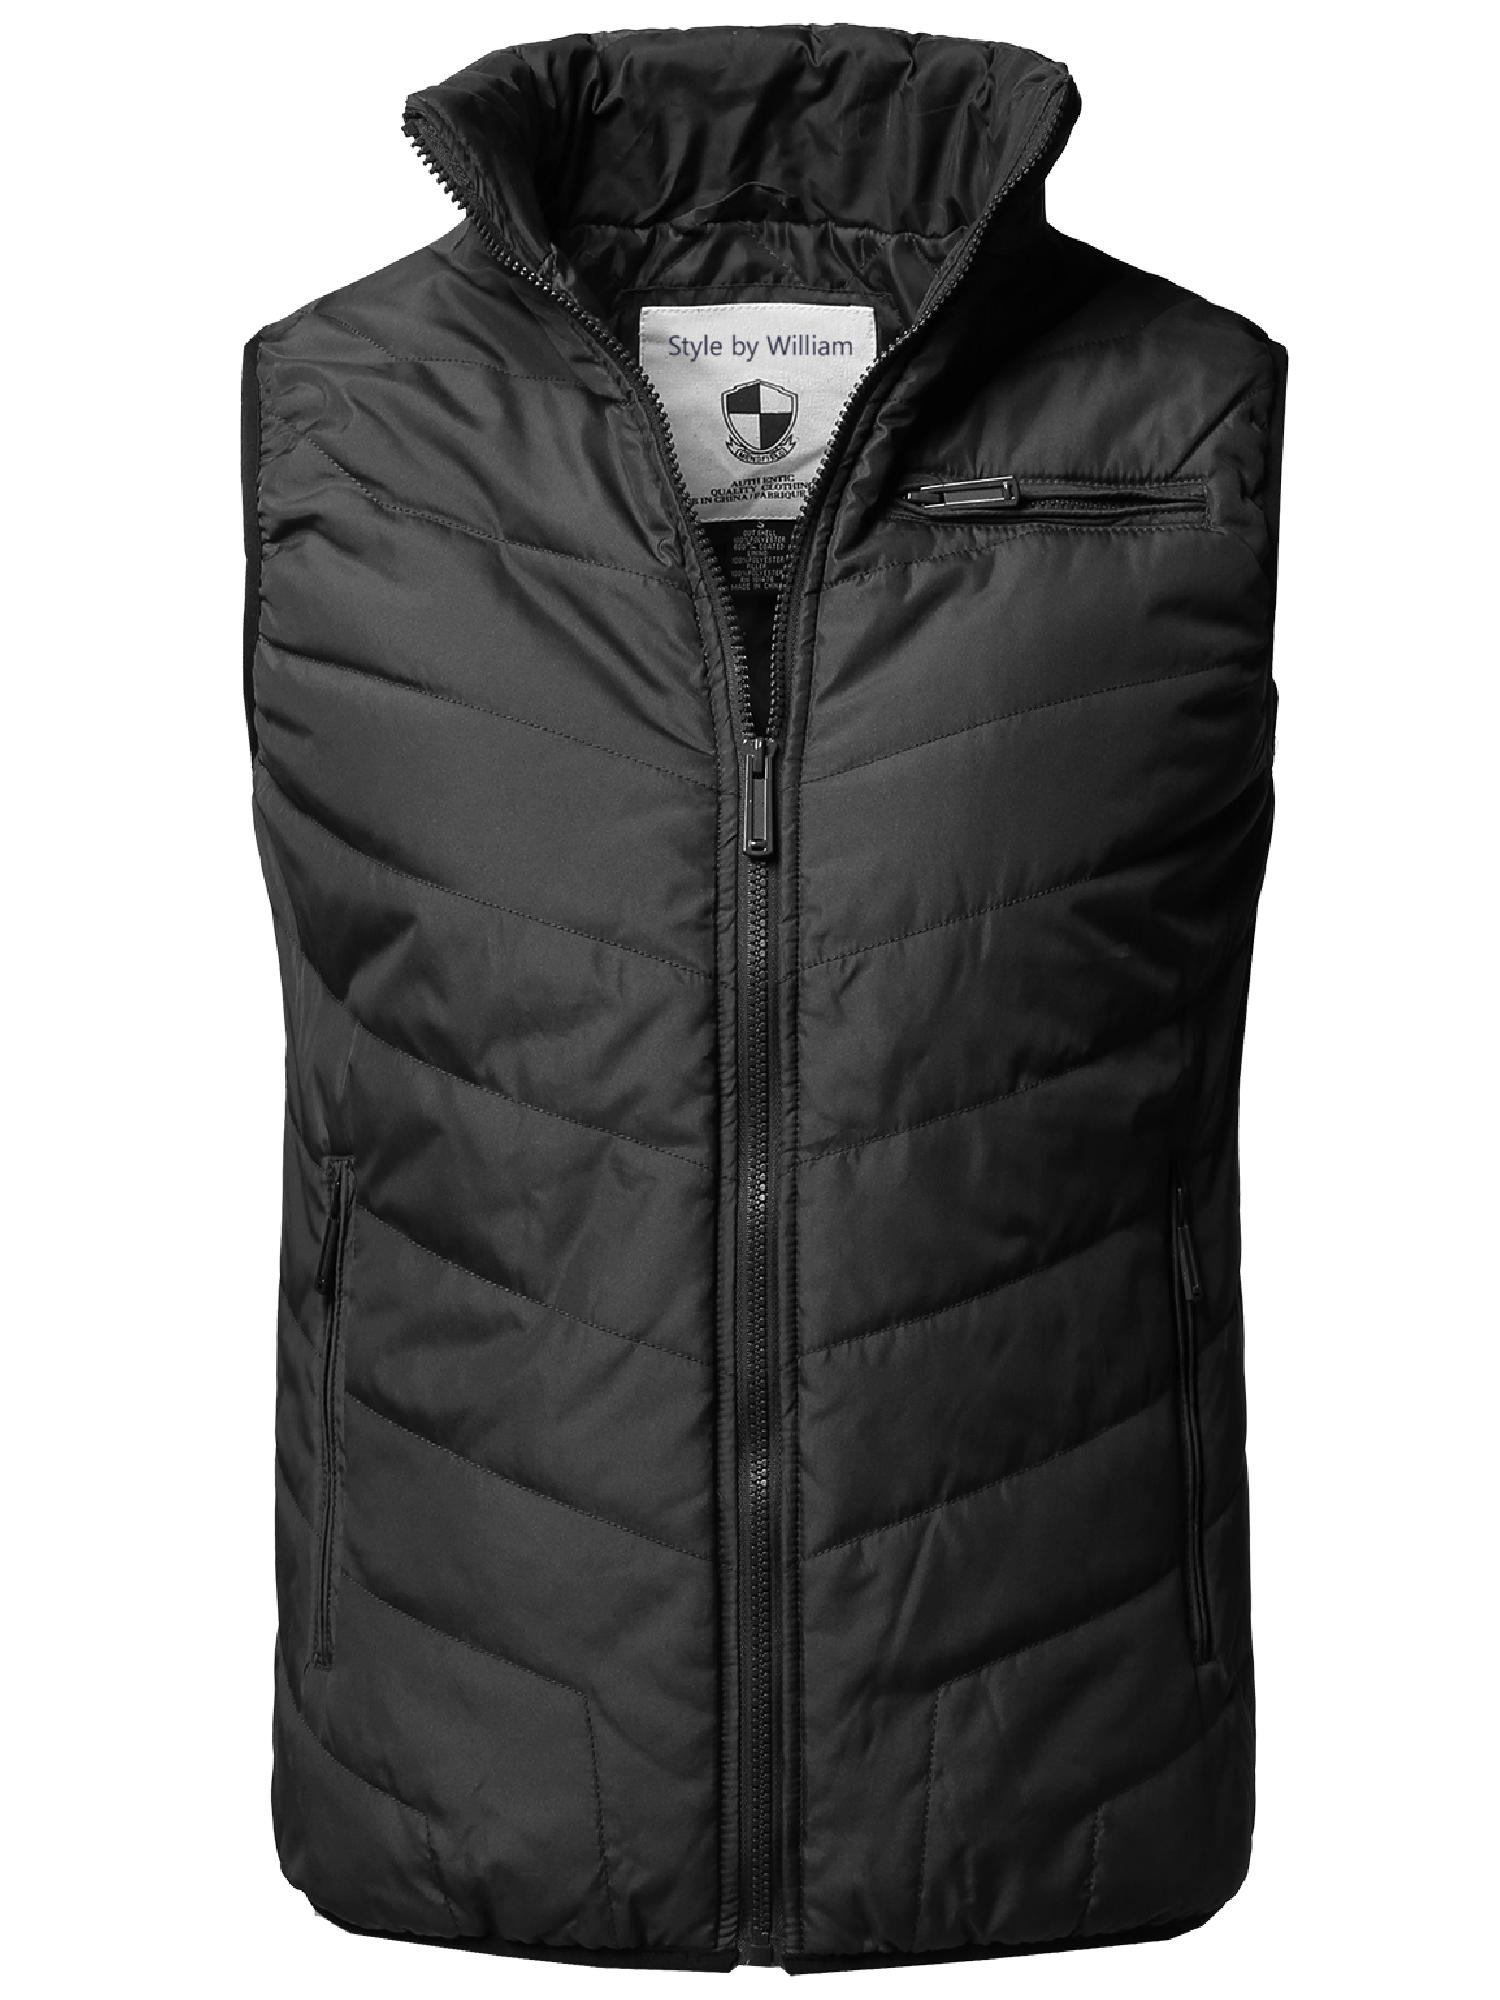 694ad5f10a76a FashionOutfit - FashionOutfit Men s Solid Front Zip Up Outdoor Comfortable  Padded Vest Outwear Jacket - Walmart.com